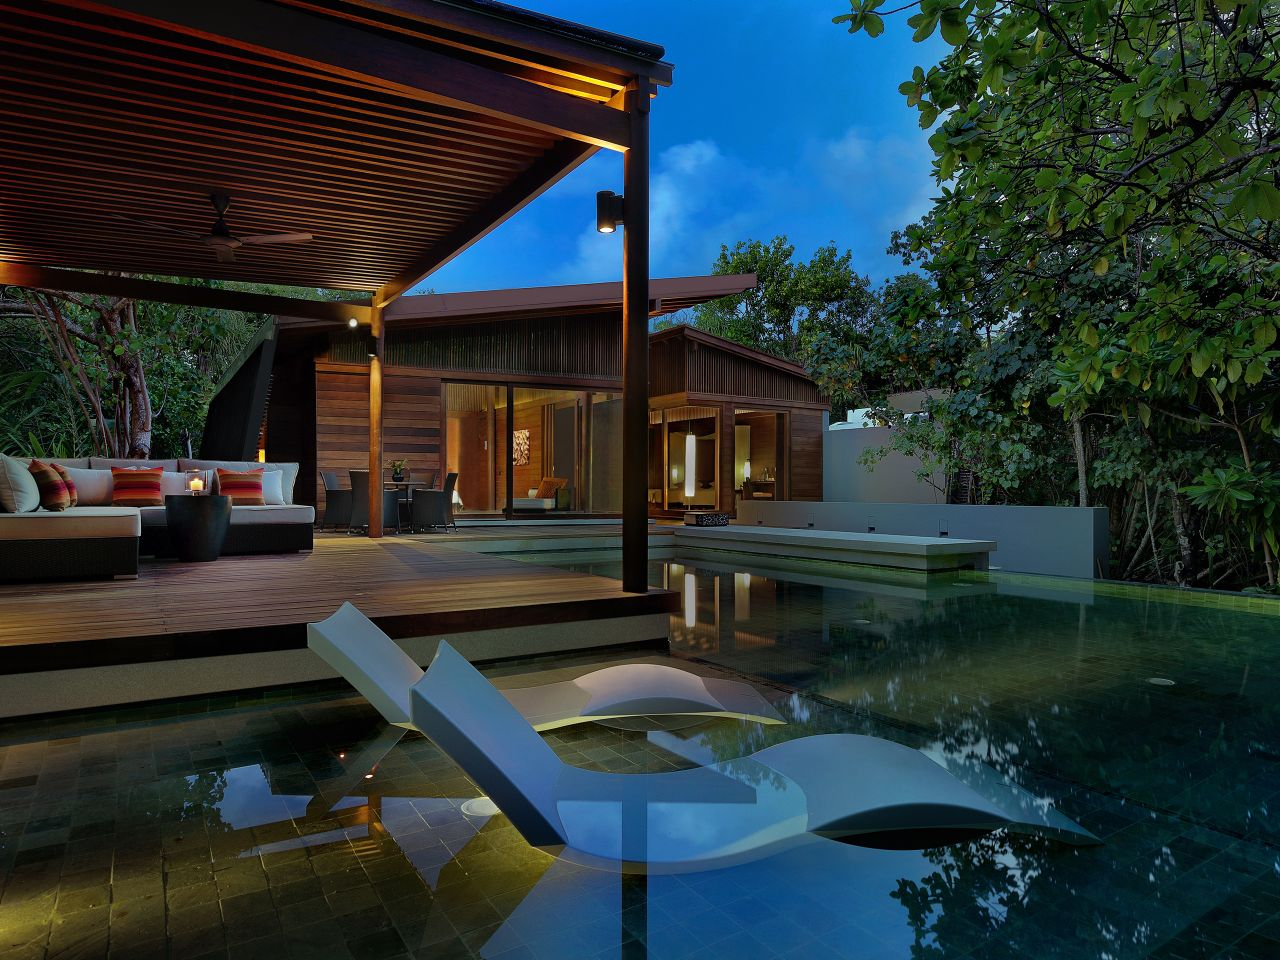 pool villa outdoor evening